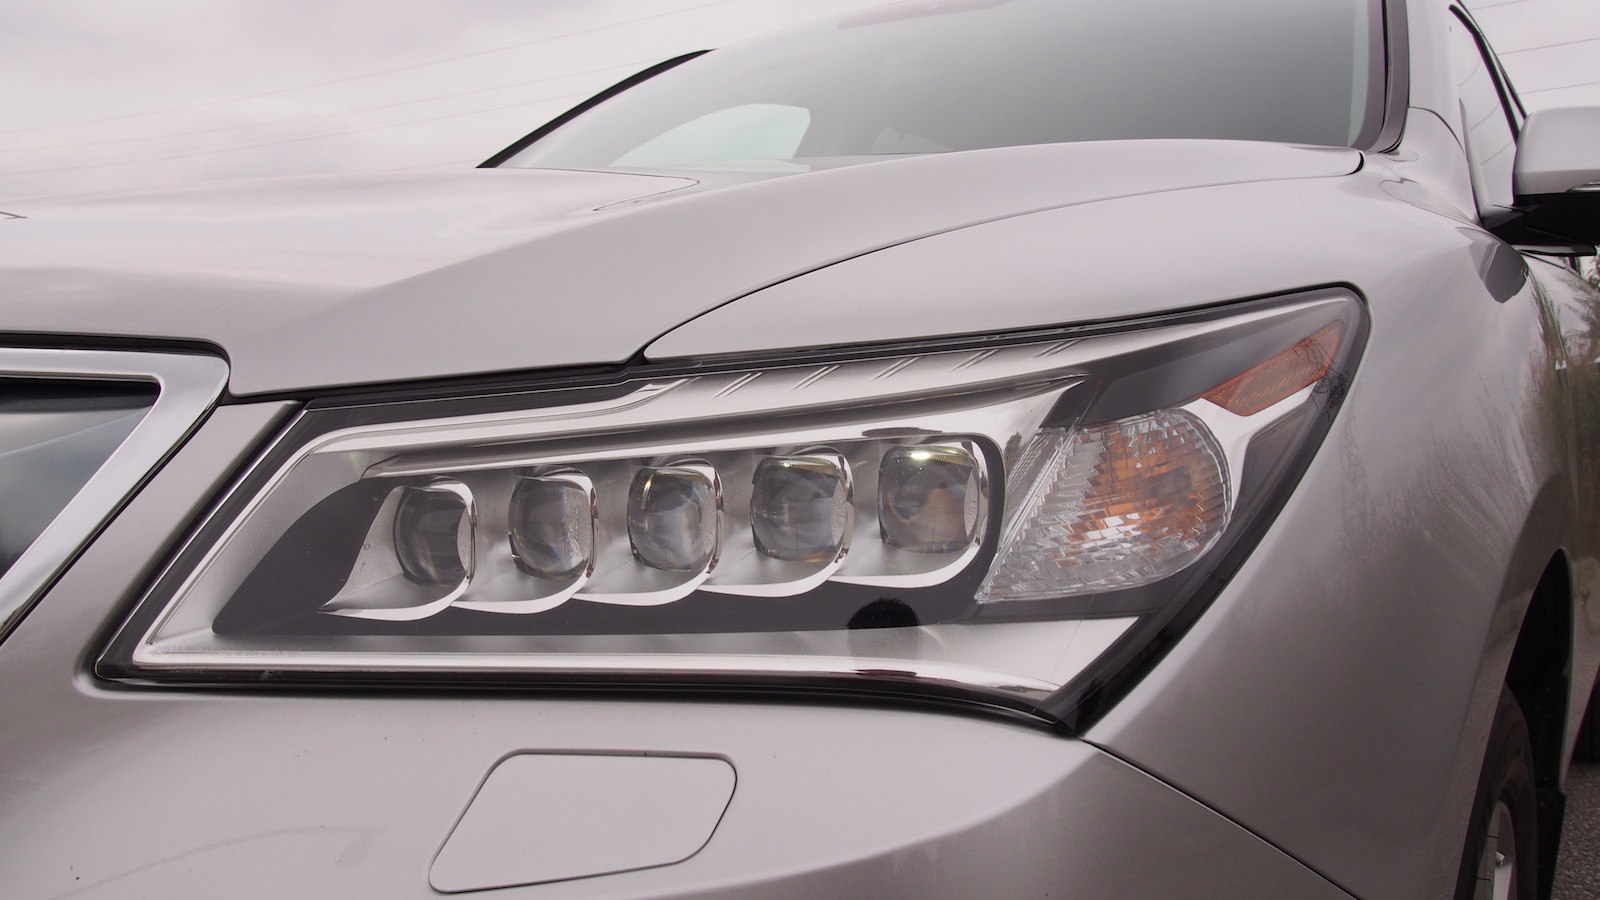 Acura MDX Elite Review Cars Photos Test Drives And - Acura mdx review 2014